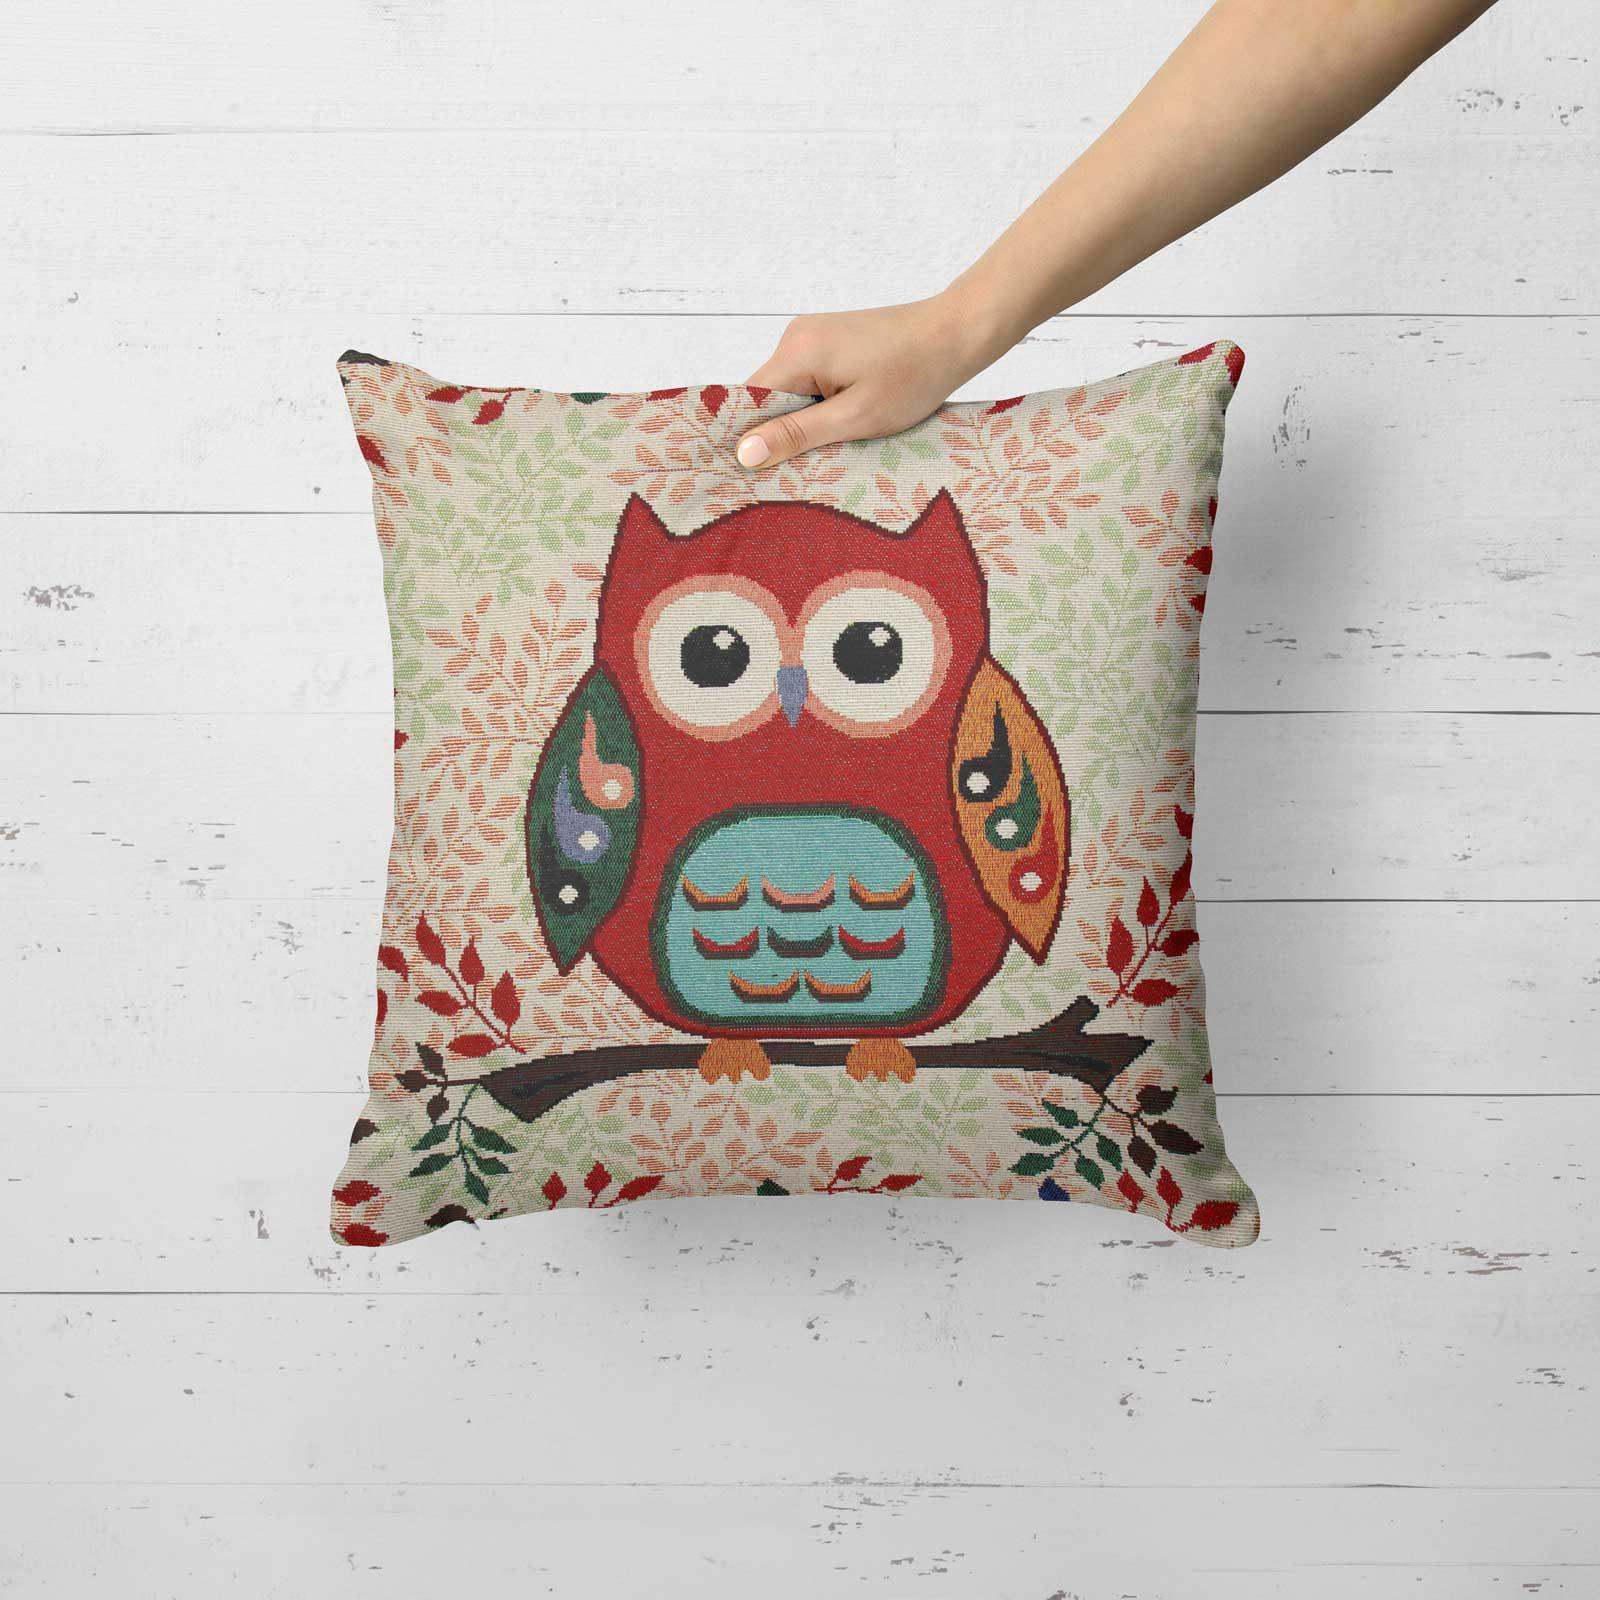 Tapestry-Cushion-Covers-Vintage-Pillow-Cover-Collection-18-034-45cm-Filled-Cushions thumbnail 212